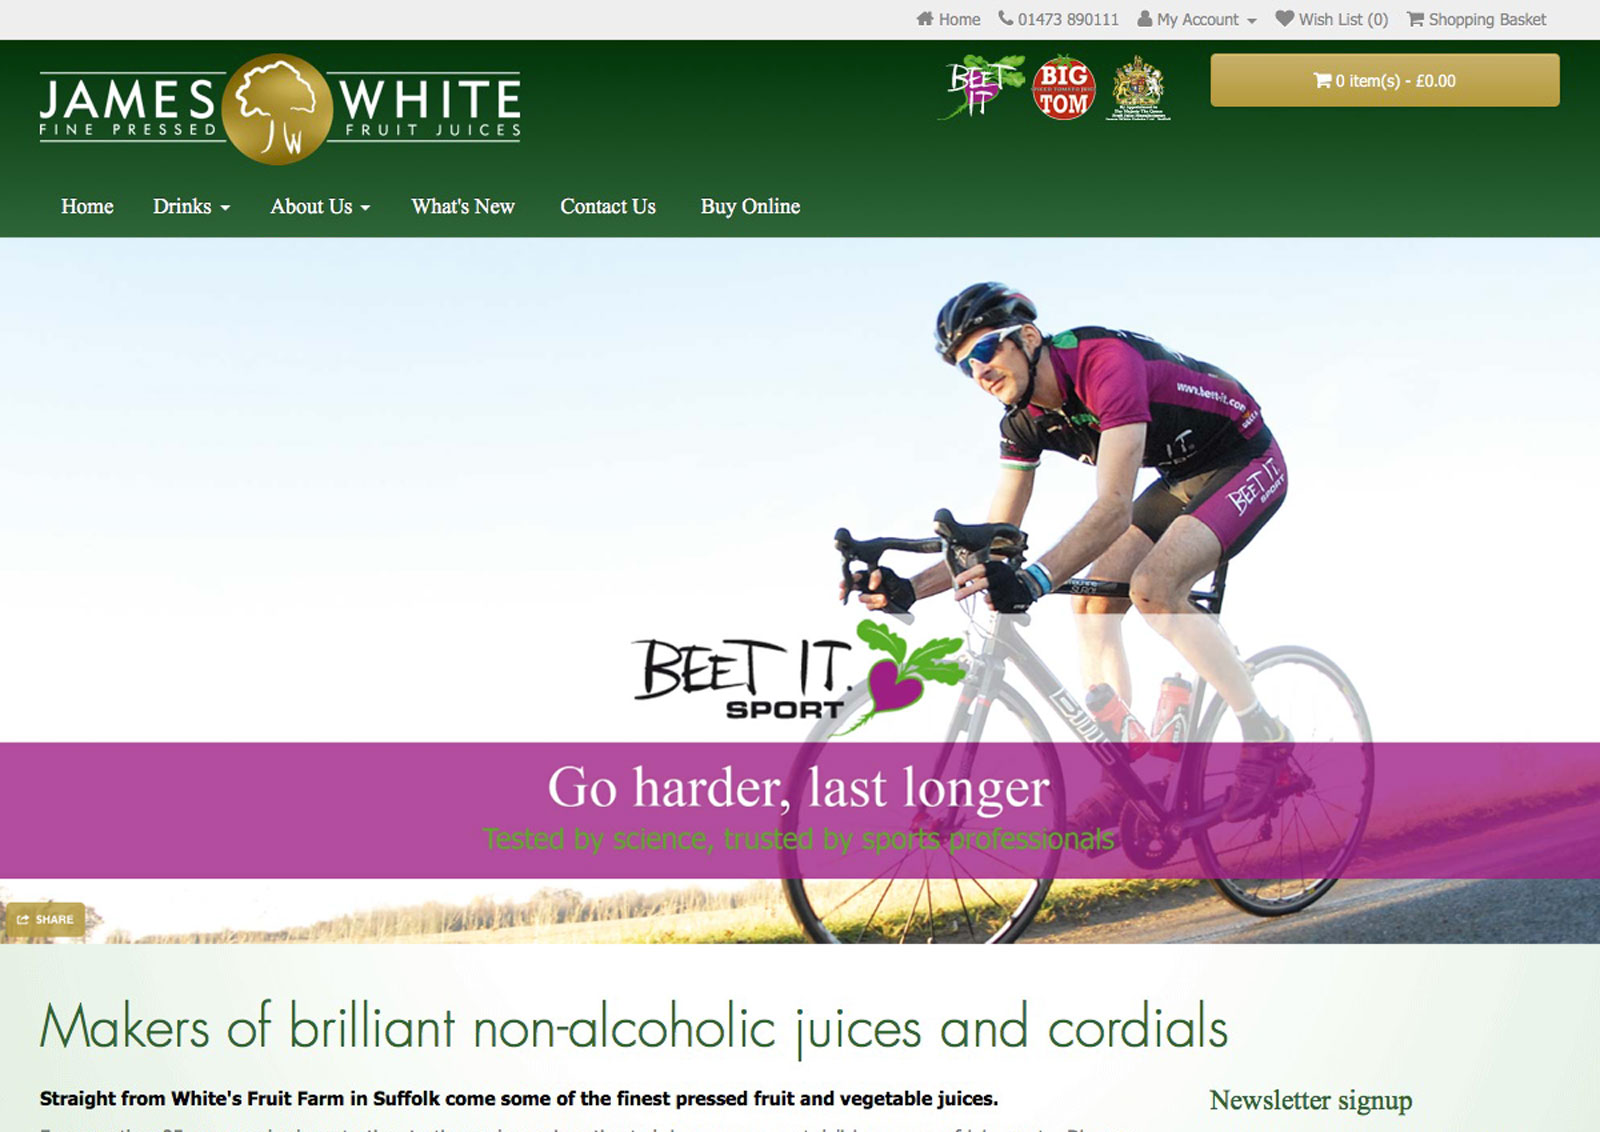 James White Drinks website home page